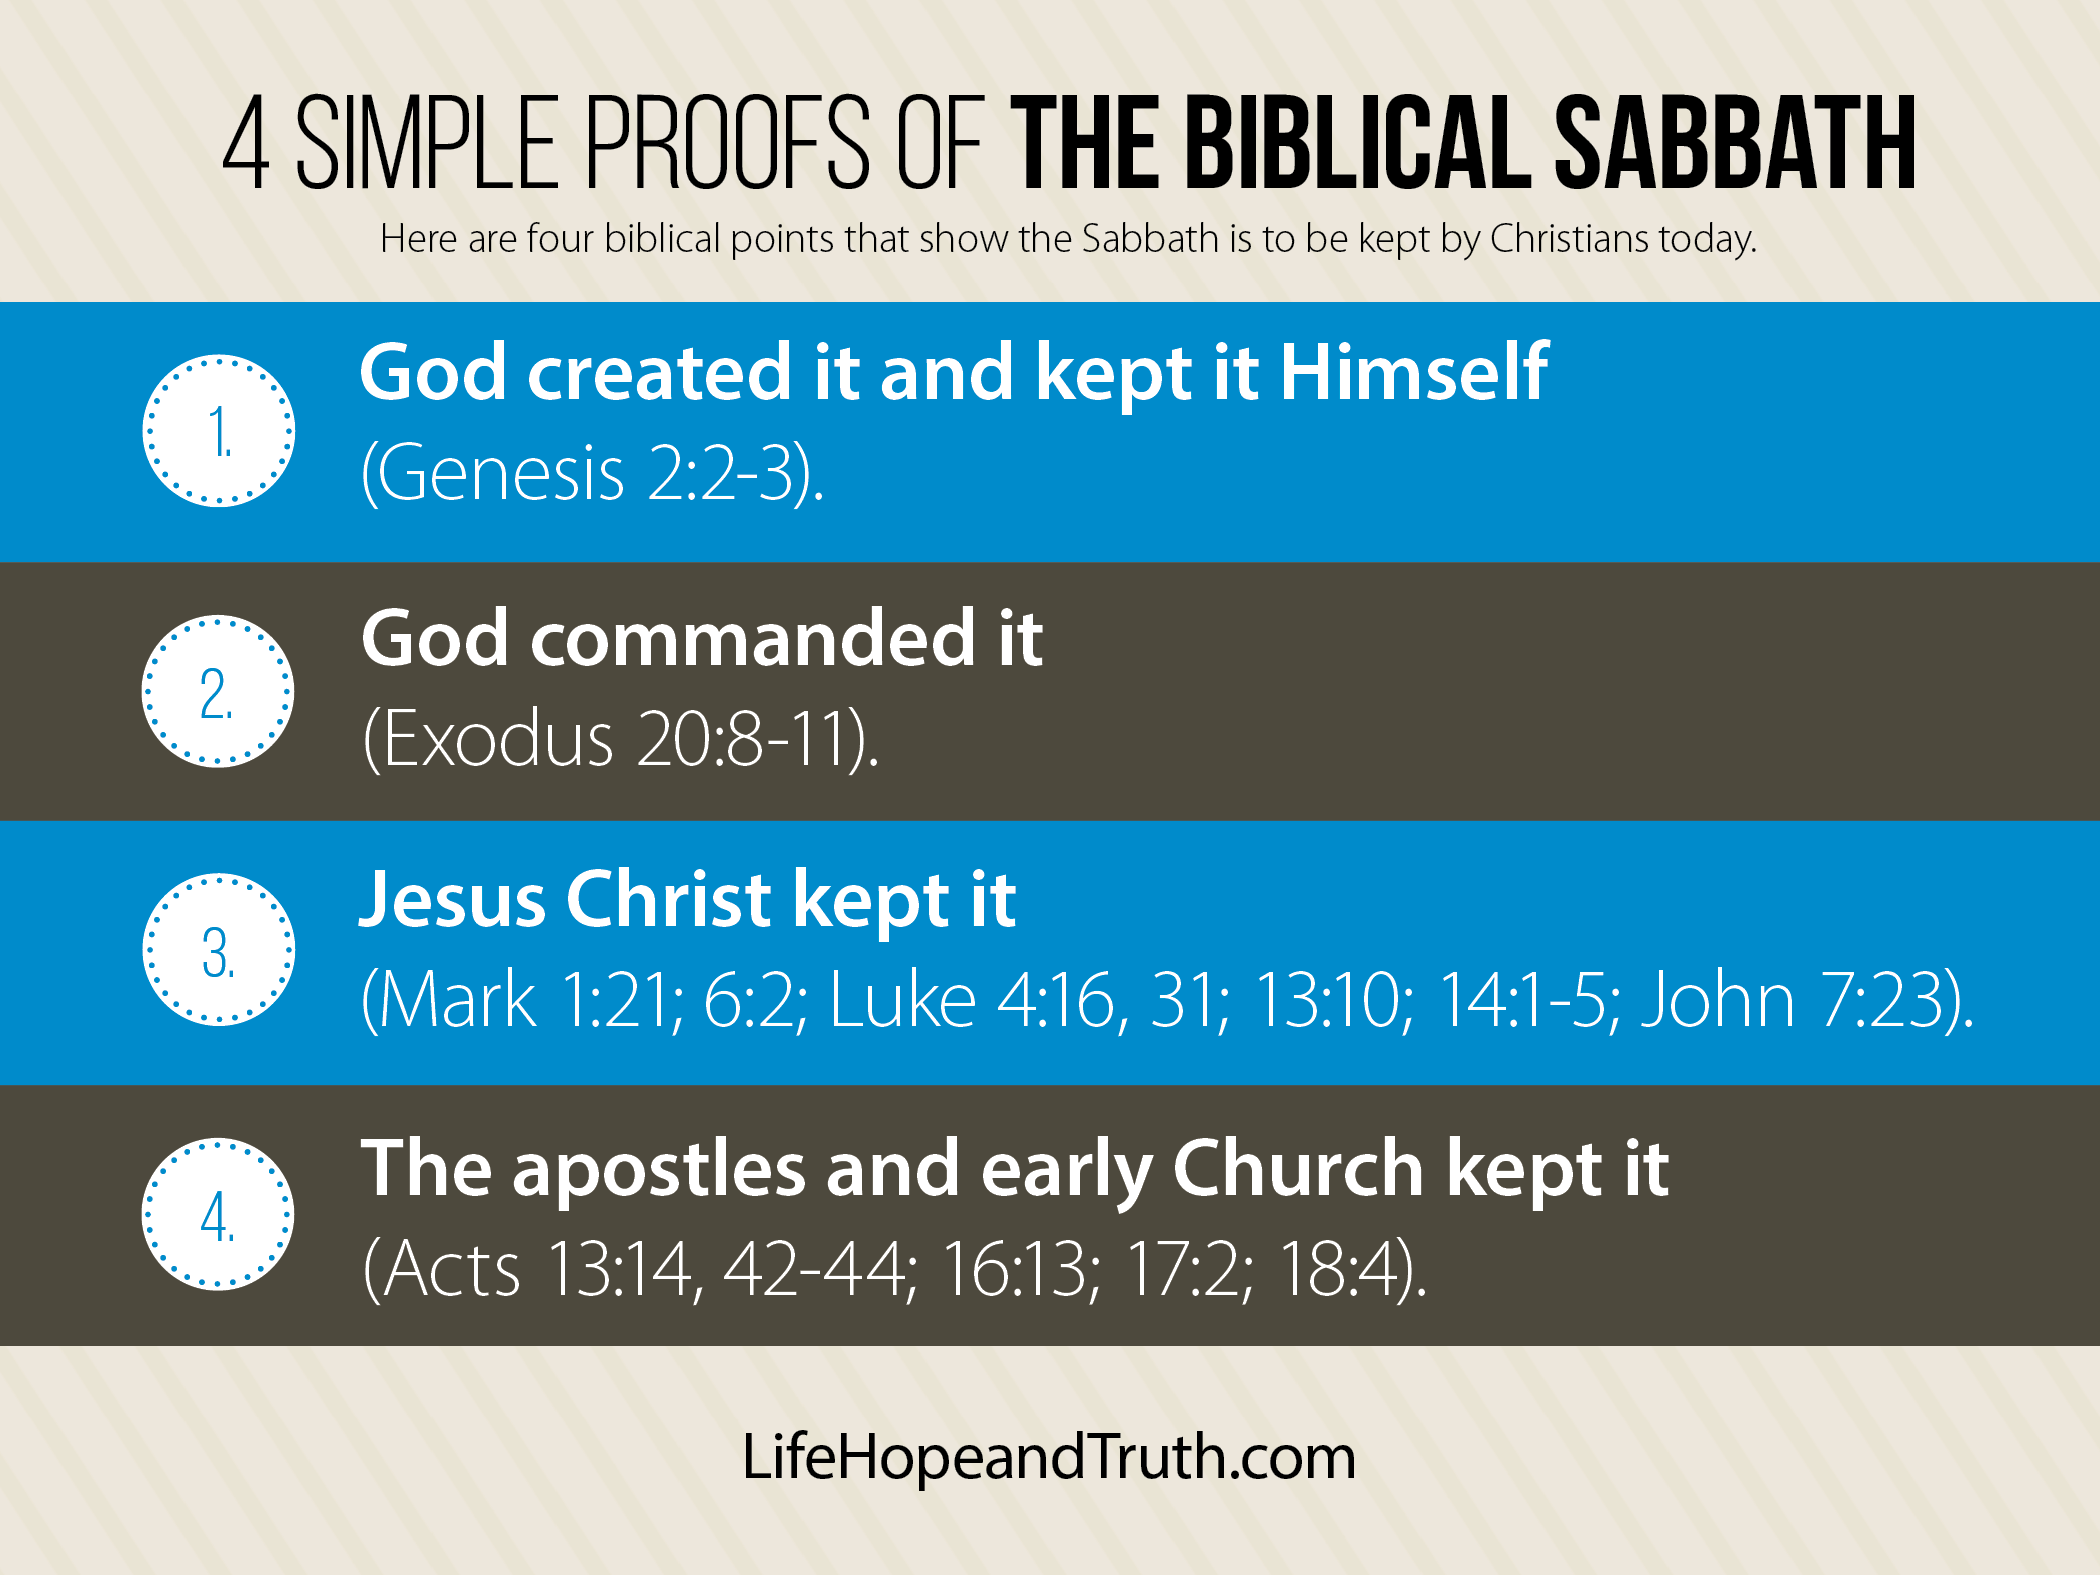 Do You Know the Lord of the Sabbath? - Life, Hope & Truth